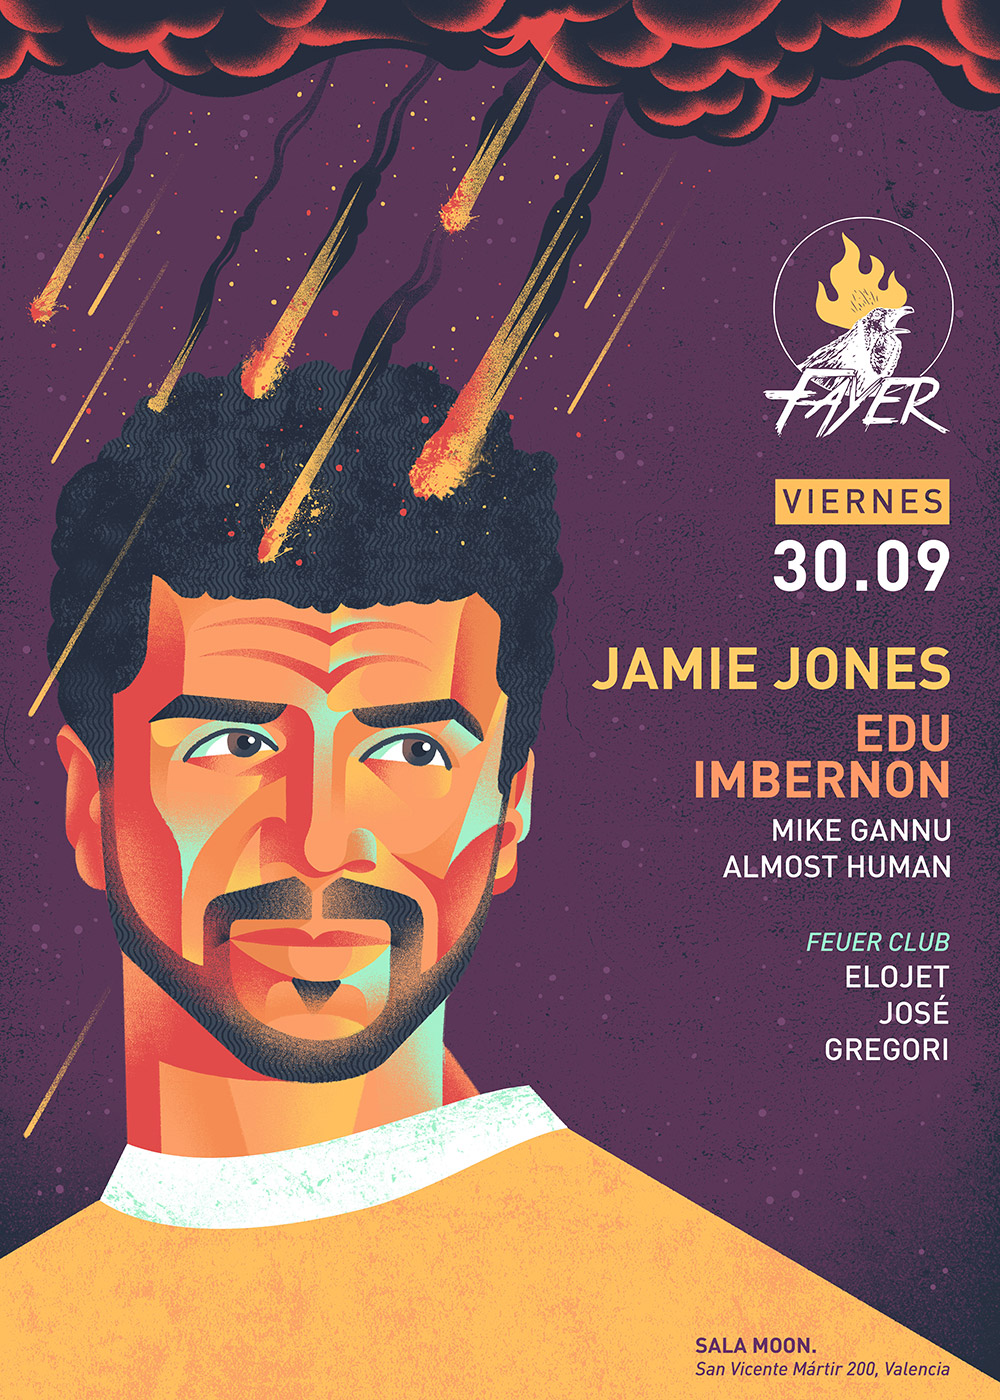 Jamie Jones next friday 30 of september at Moon Valencia with Fayer